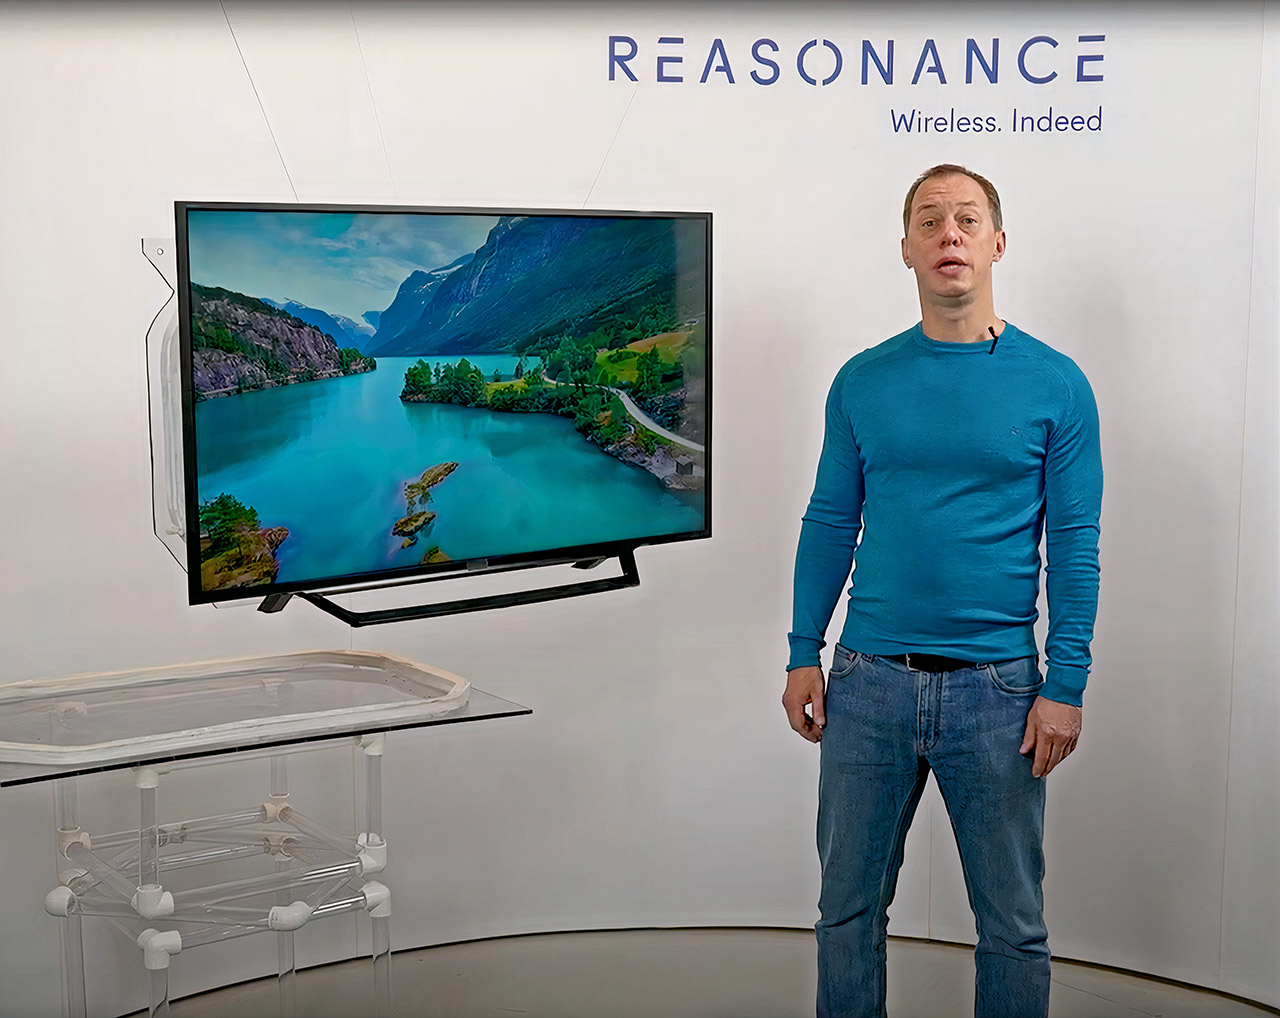 Reasonance Wireless TV Technology CES